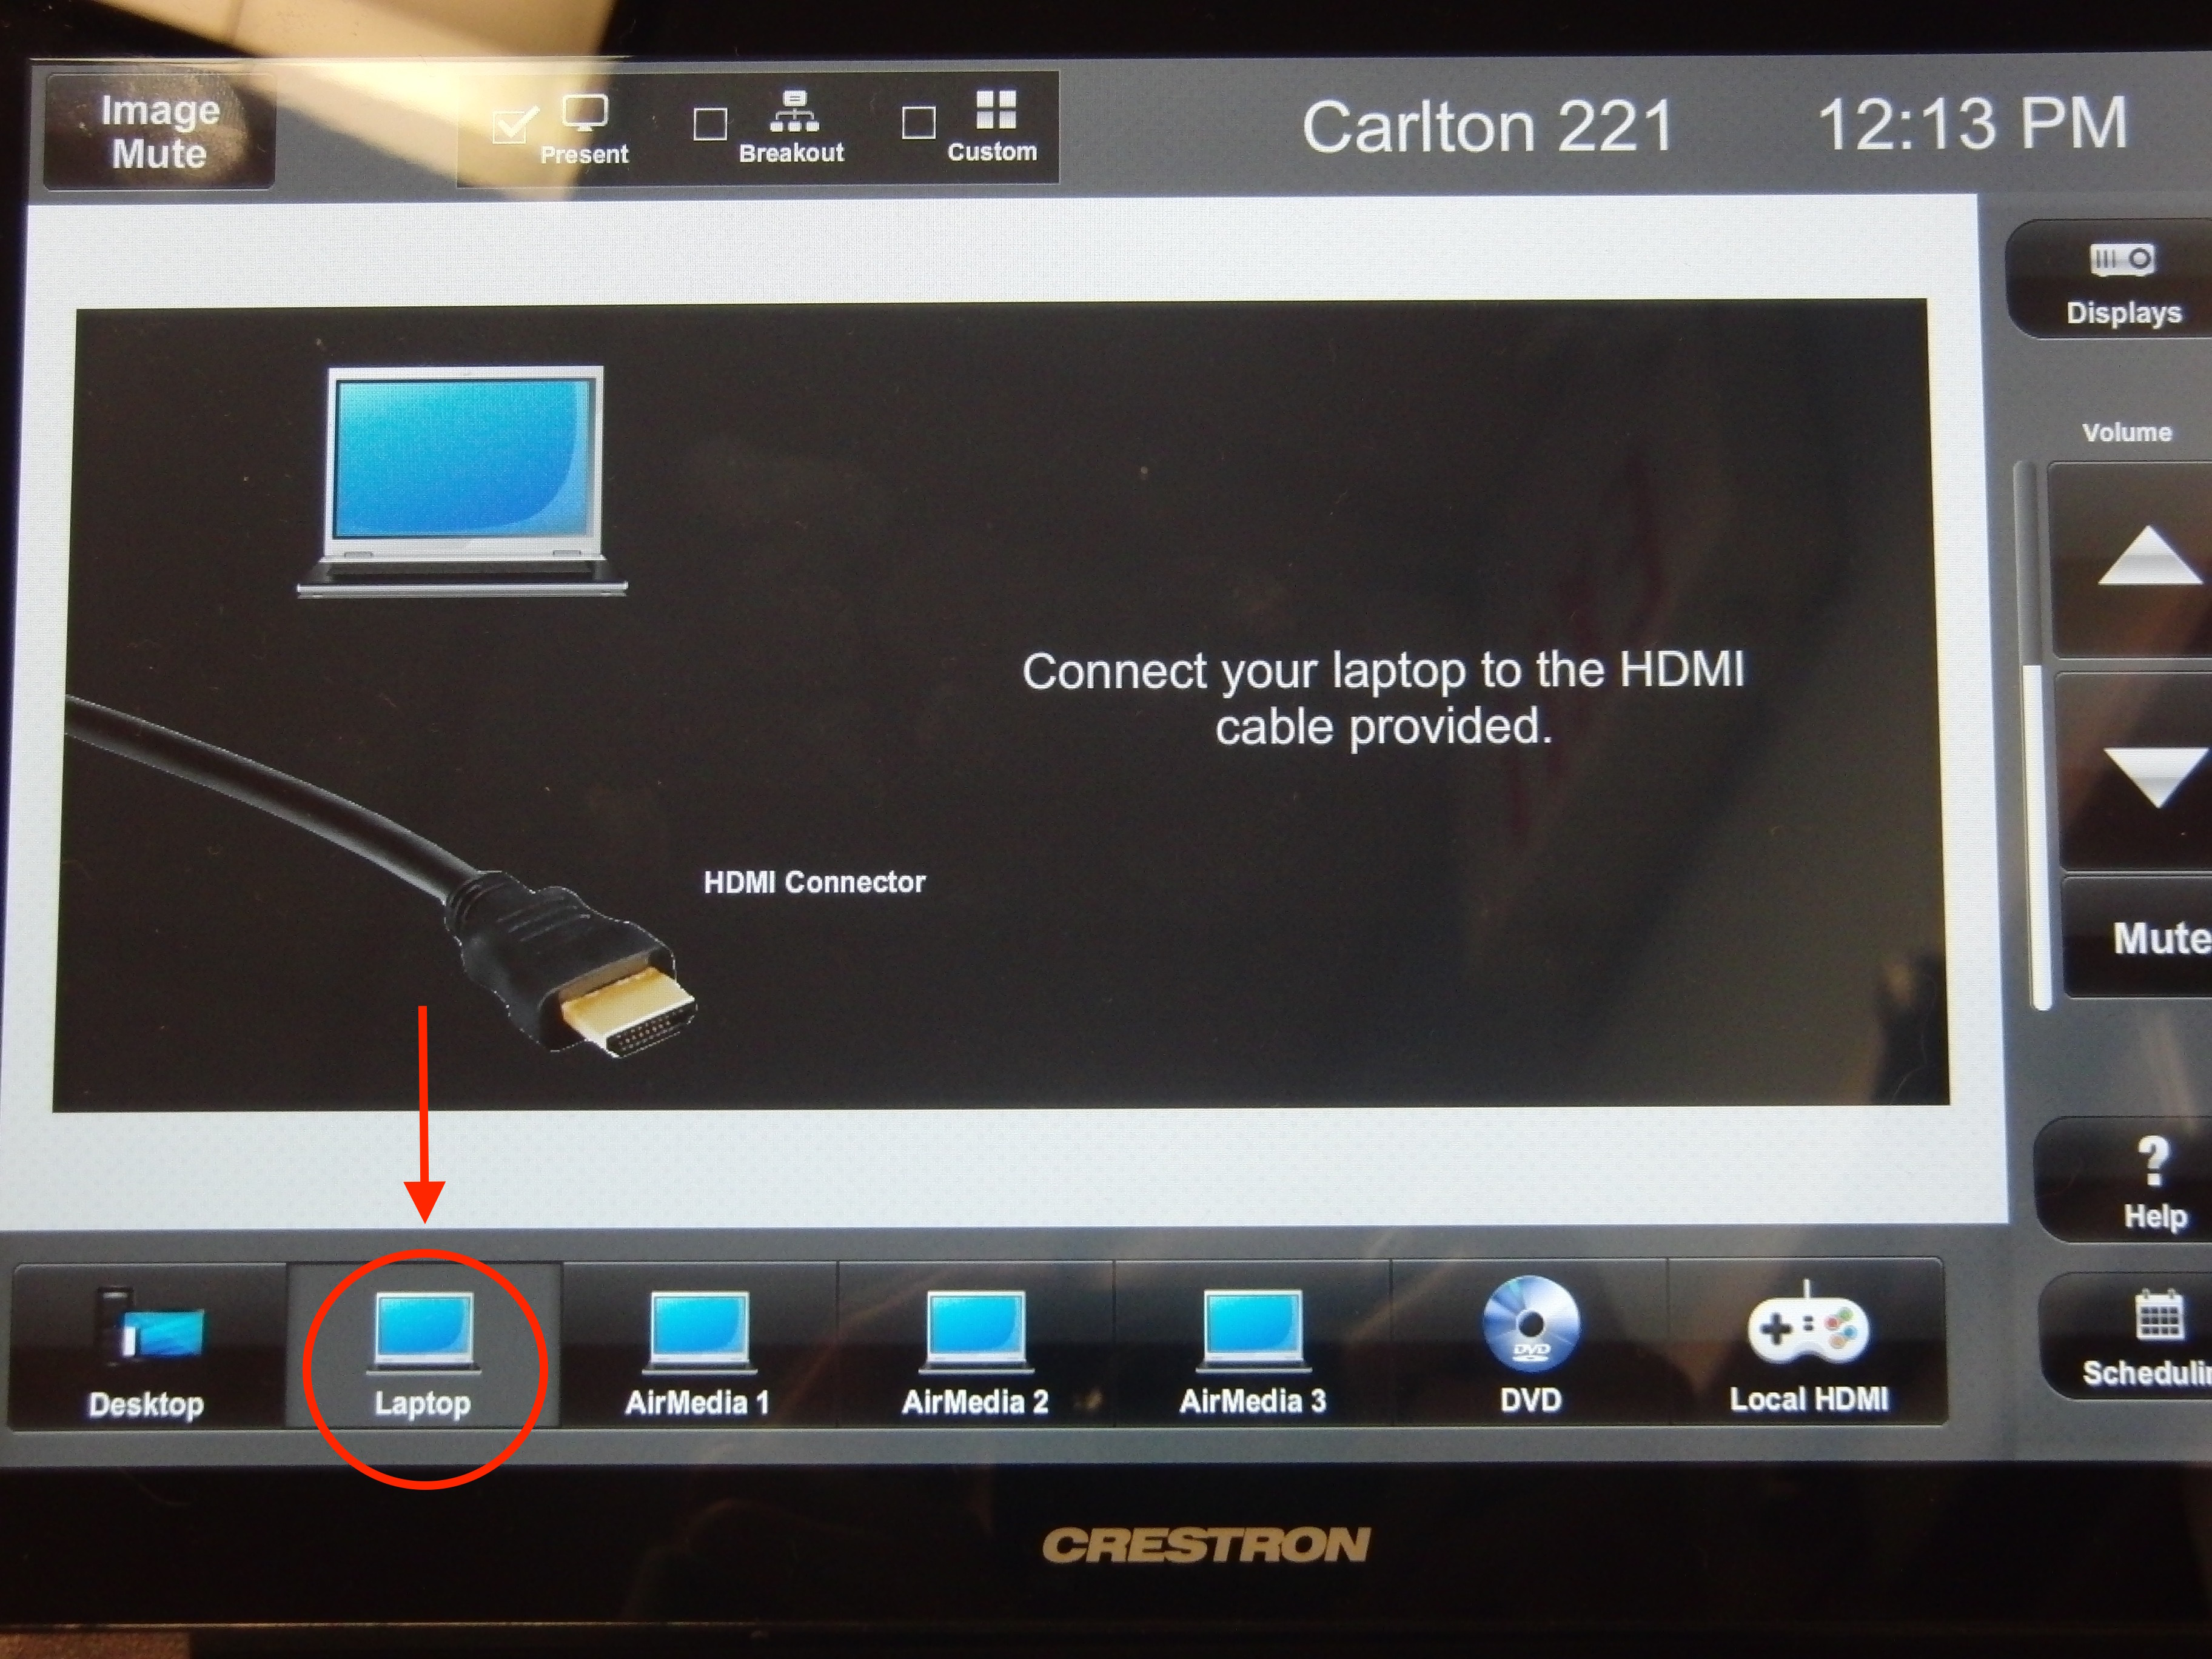 Photo of crestron control touch panel highlighting the laptop option